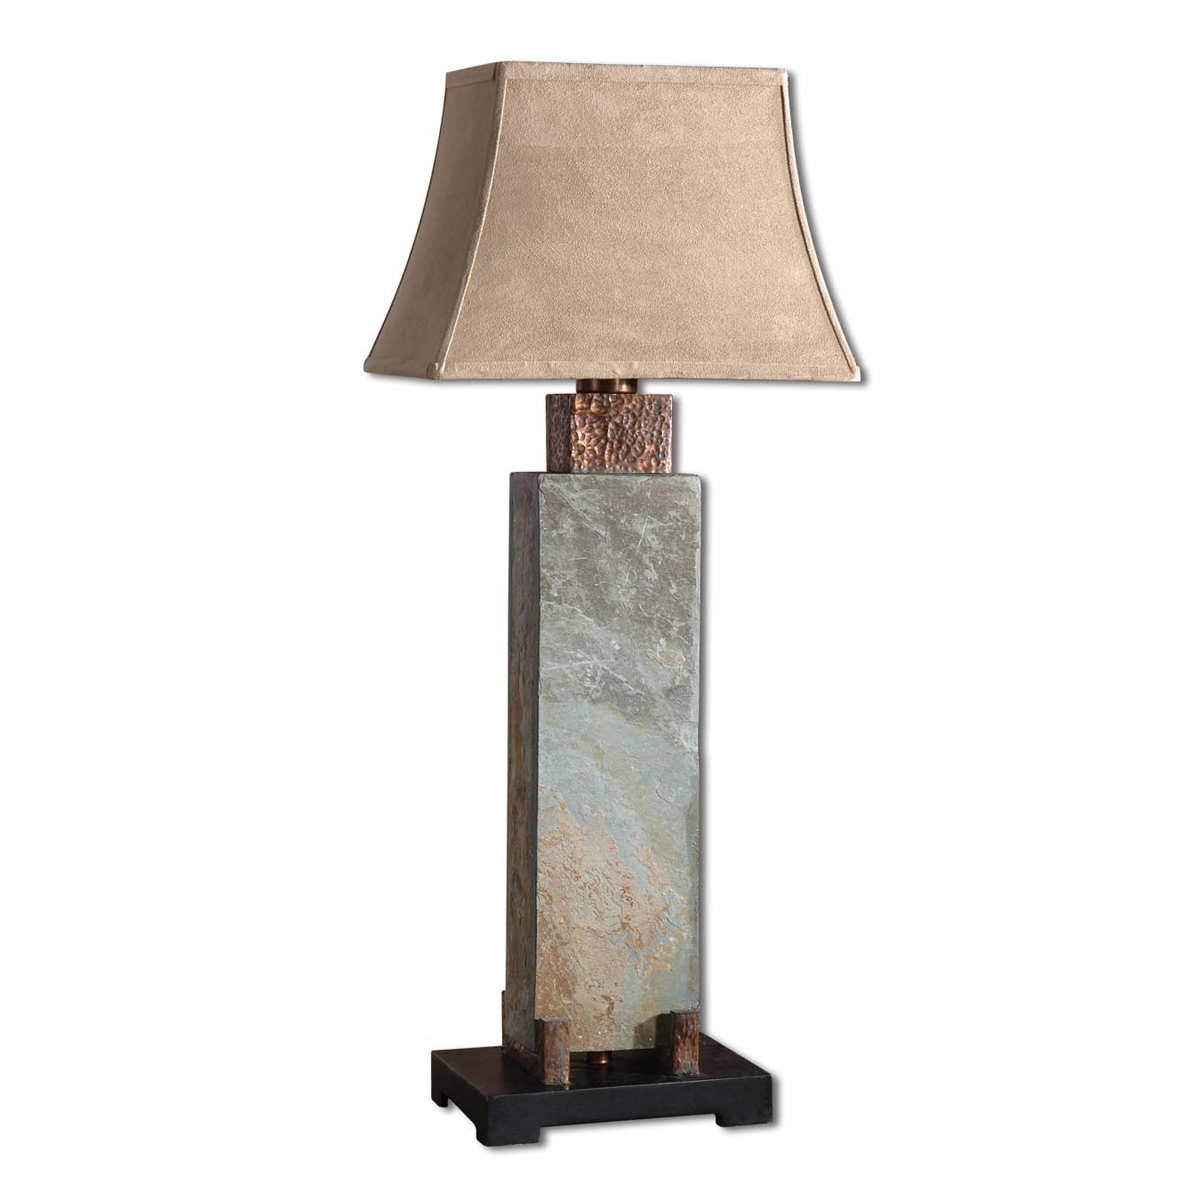 Creative Decoration Rustic Table Lamps For Living Room Rustic Table Inside Newest Tall Table Lamps For Living Room (View 5 of 15)